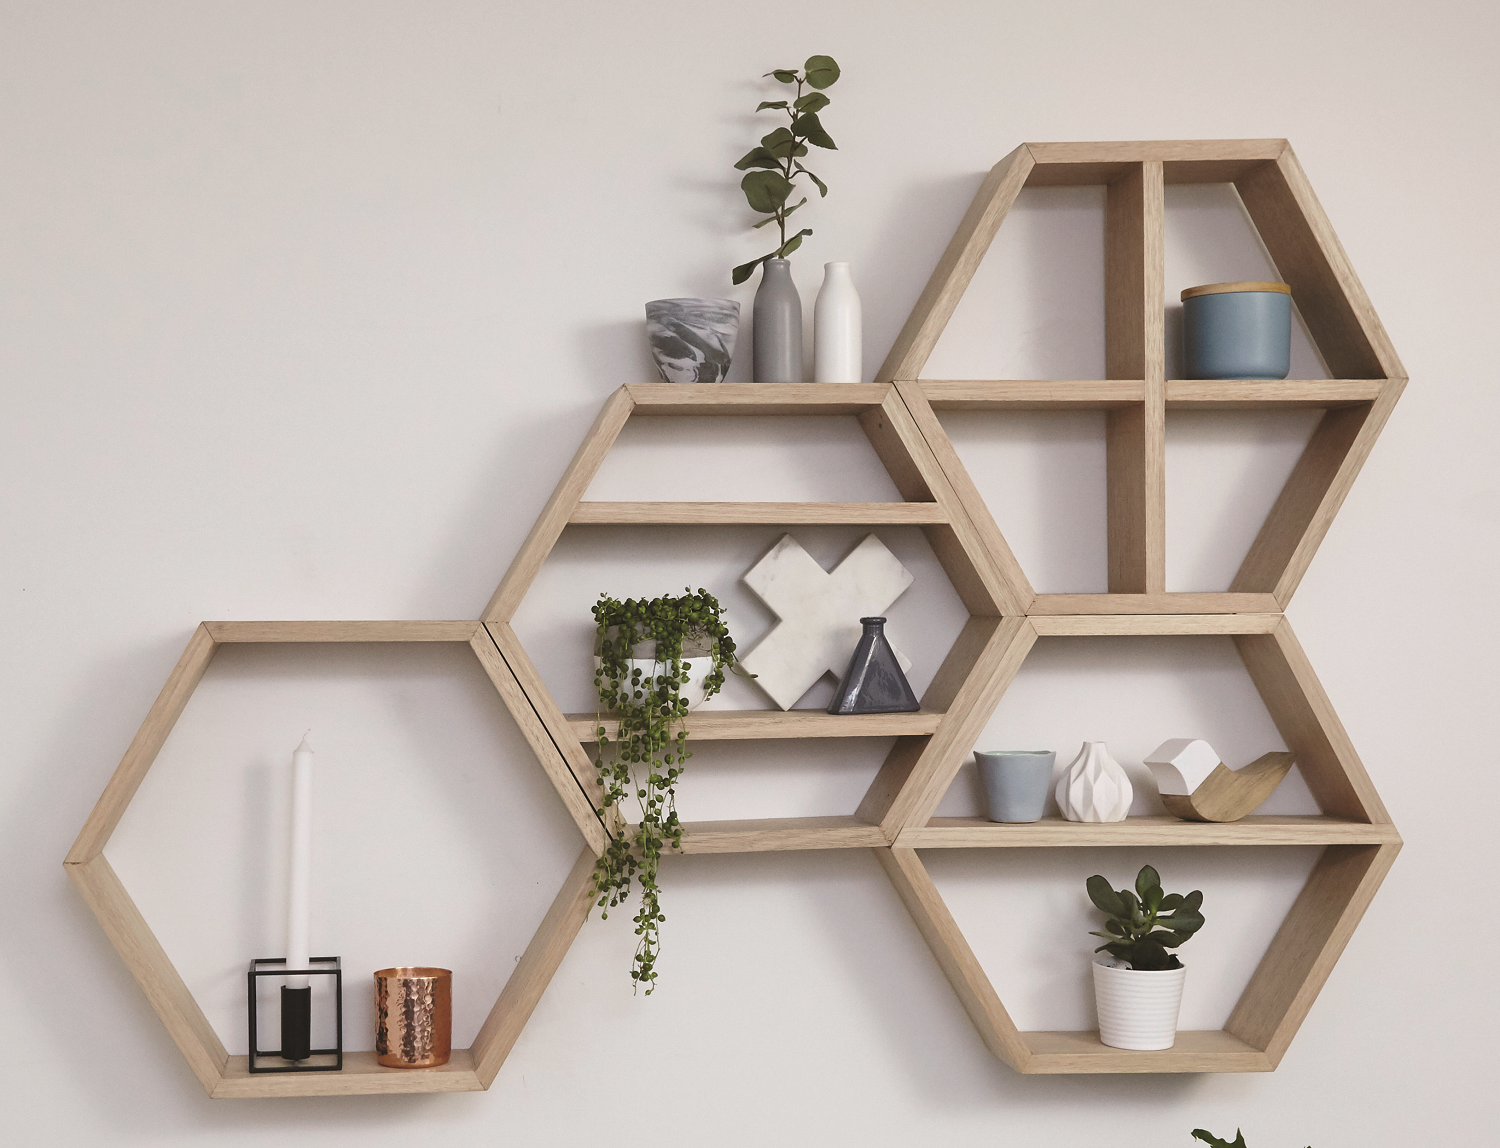 Honeycomb_Wall_Shelves.png